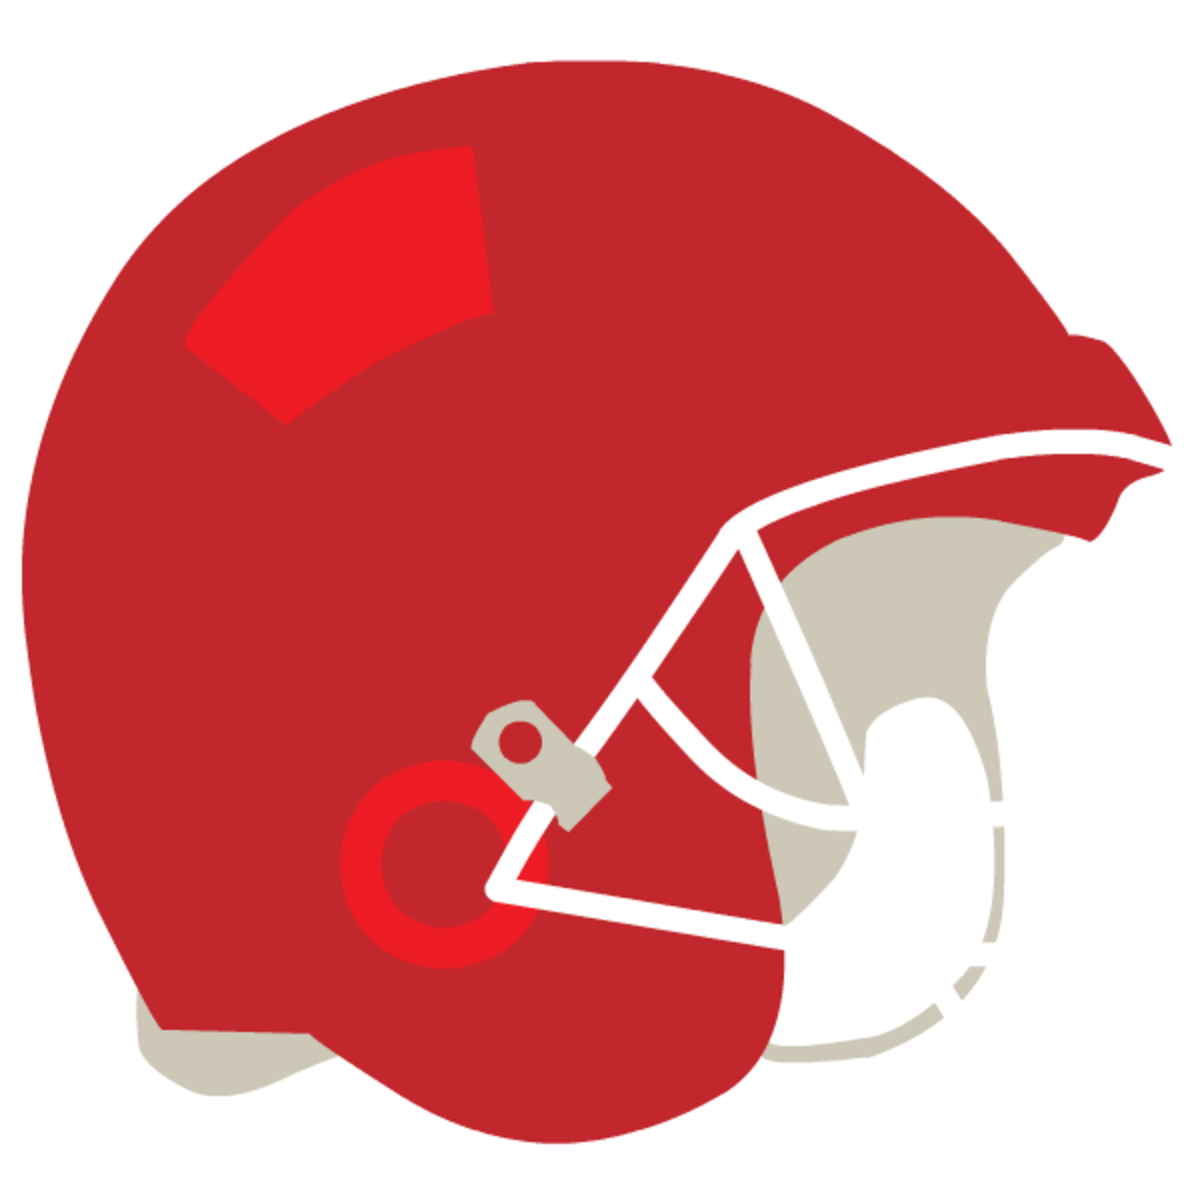 Red football helmet clip art